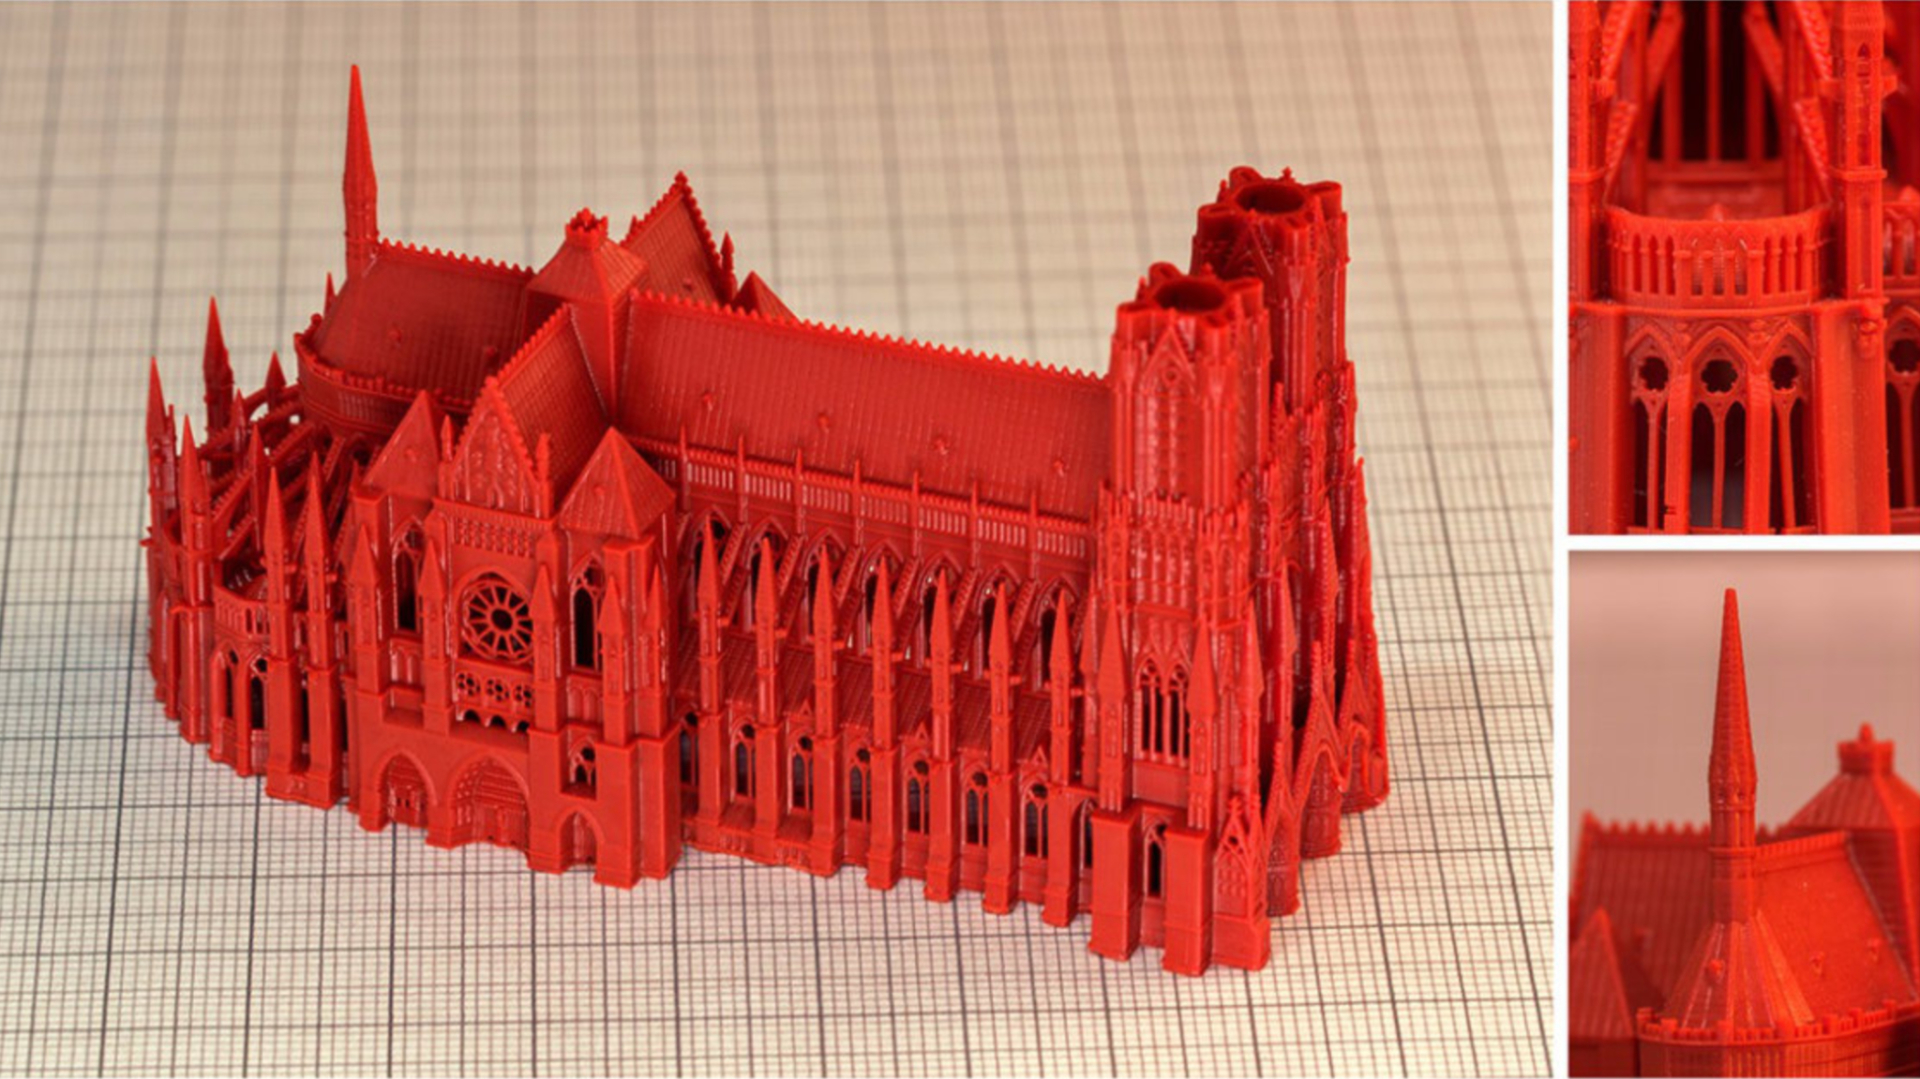 reims cathedral dlp 3d print 9cm